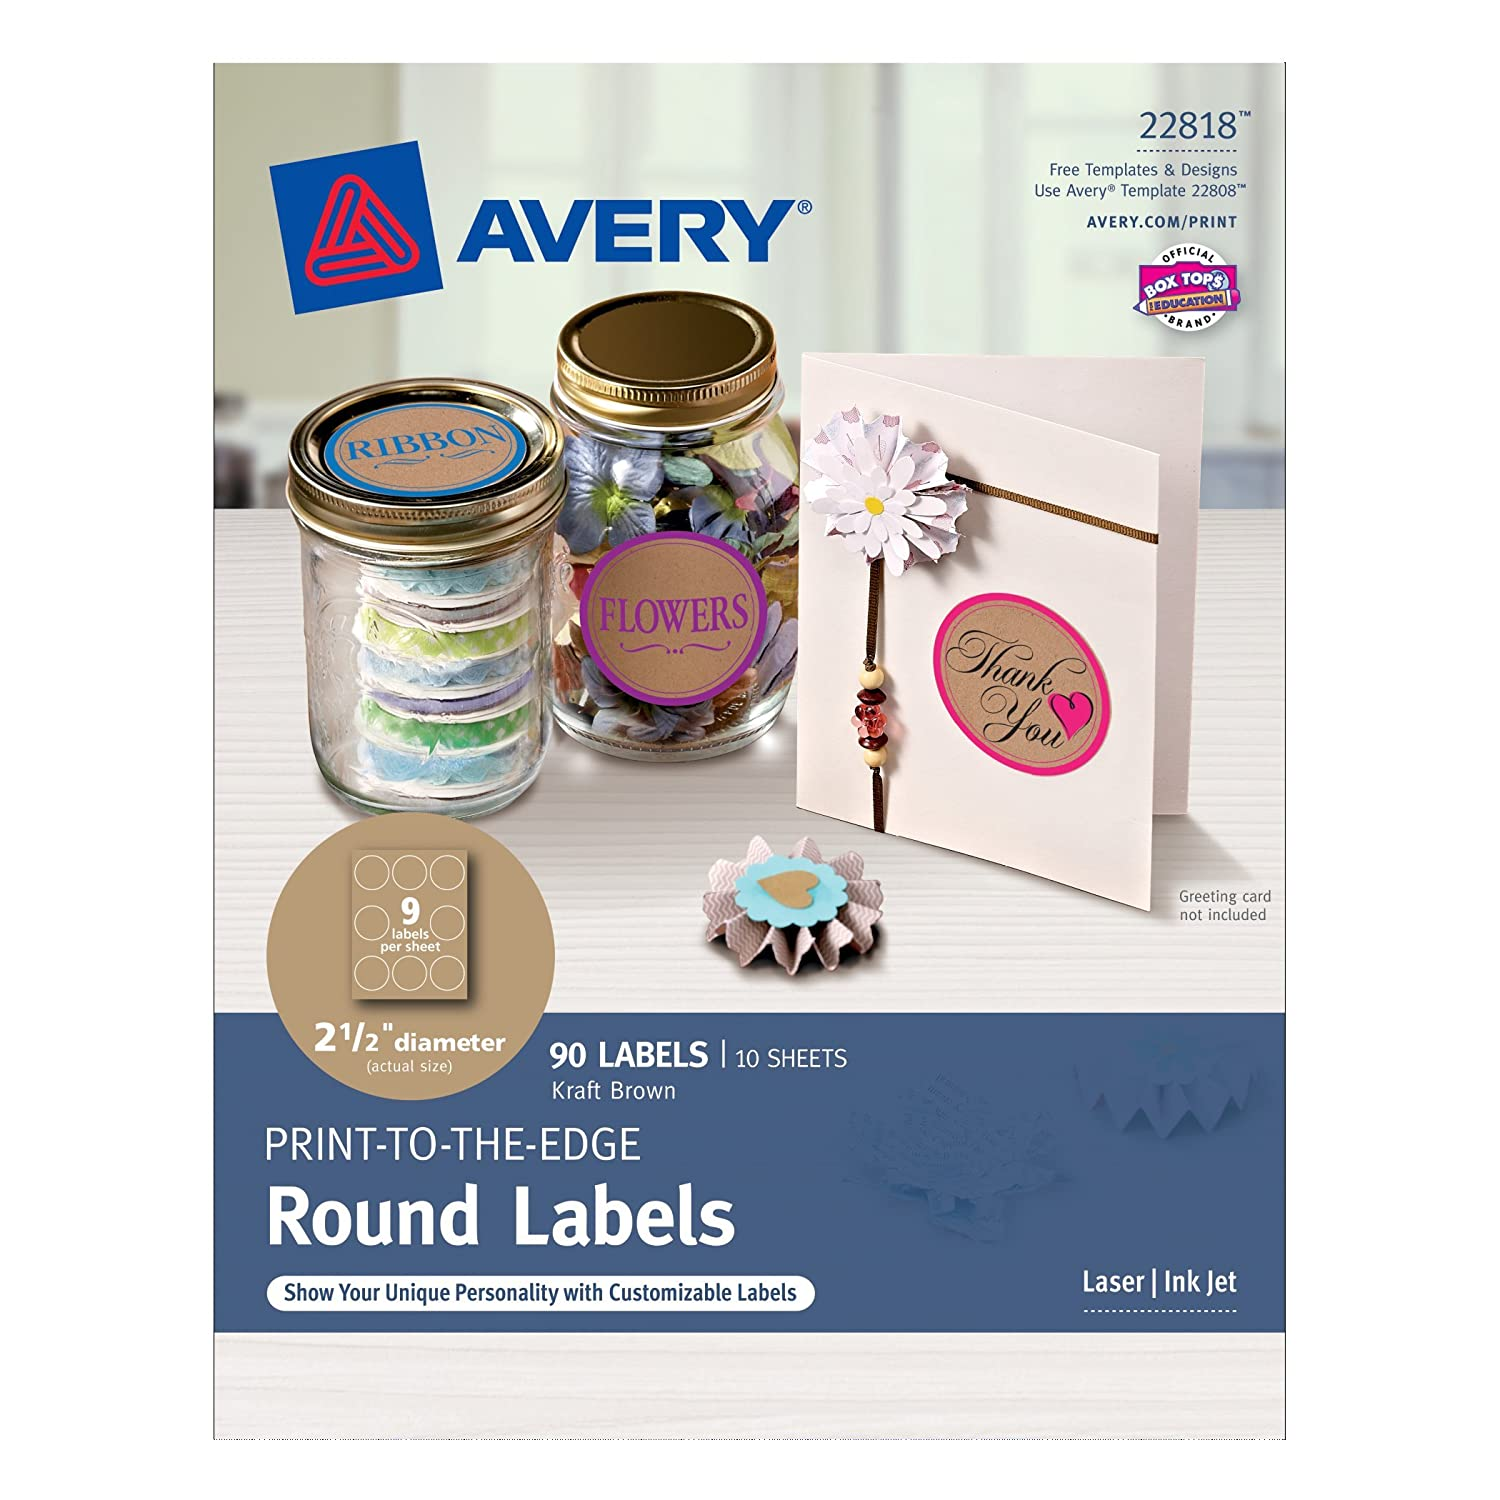 Amazoncom Avery PrinttotheEdge Round Labels Kraft Brown - Avery water bottle label template